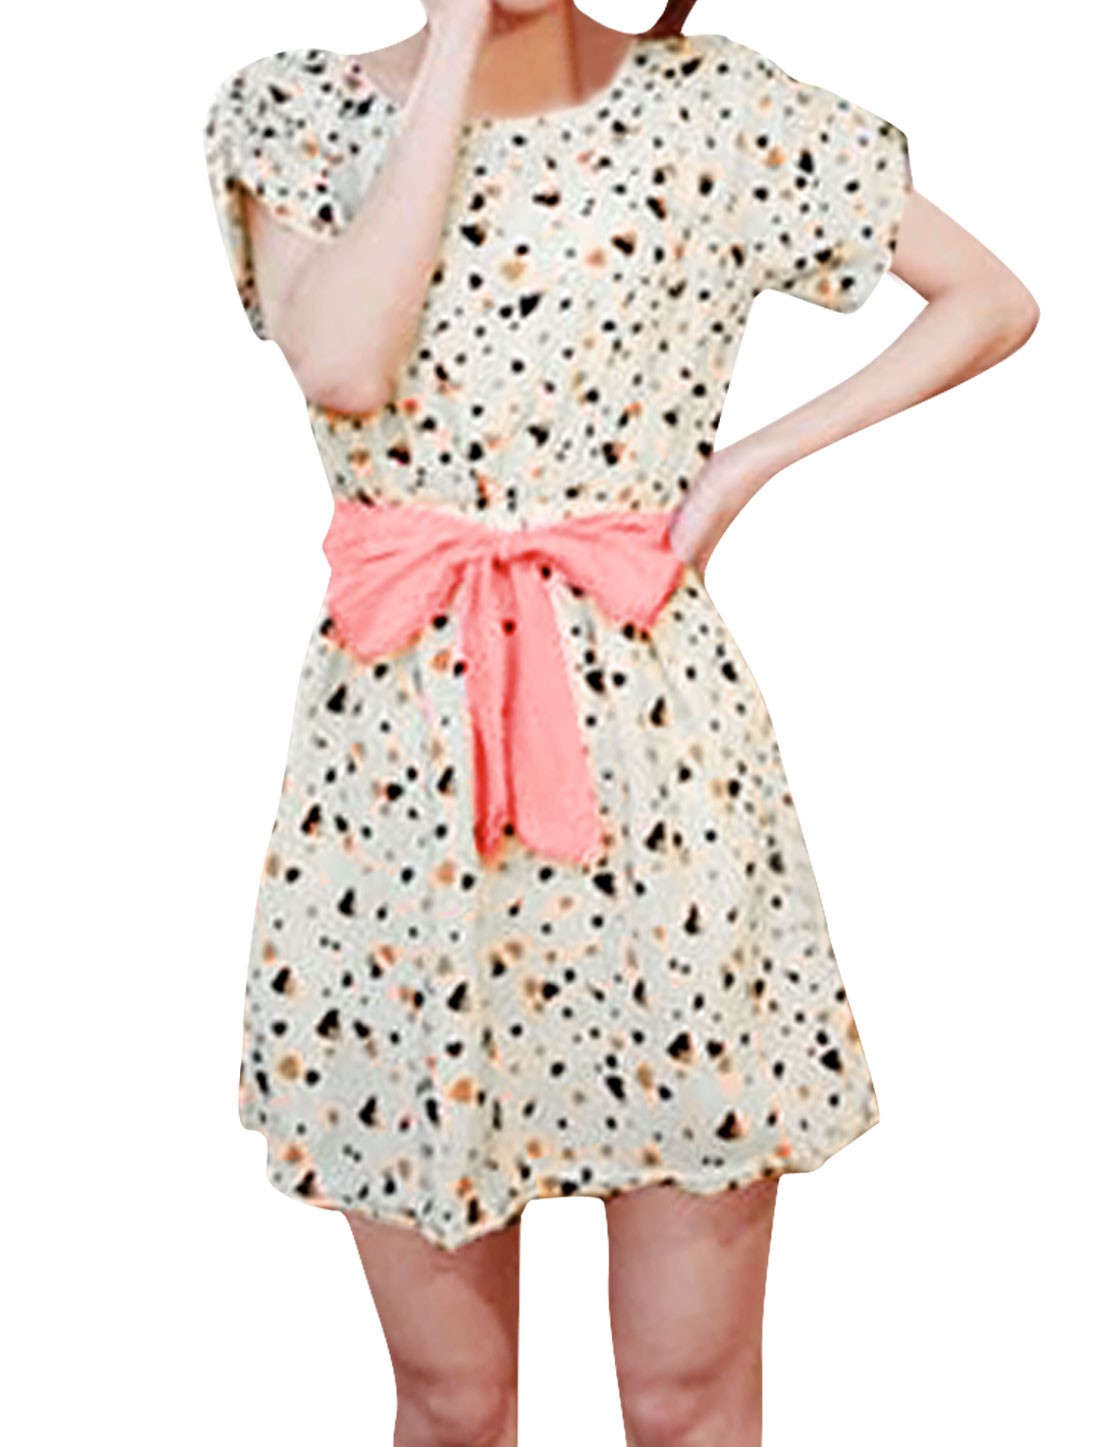 Lady Apricot Heart Prints Elastic Waist W Waist Belt Pullover Dress S